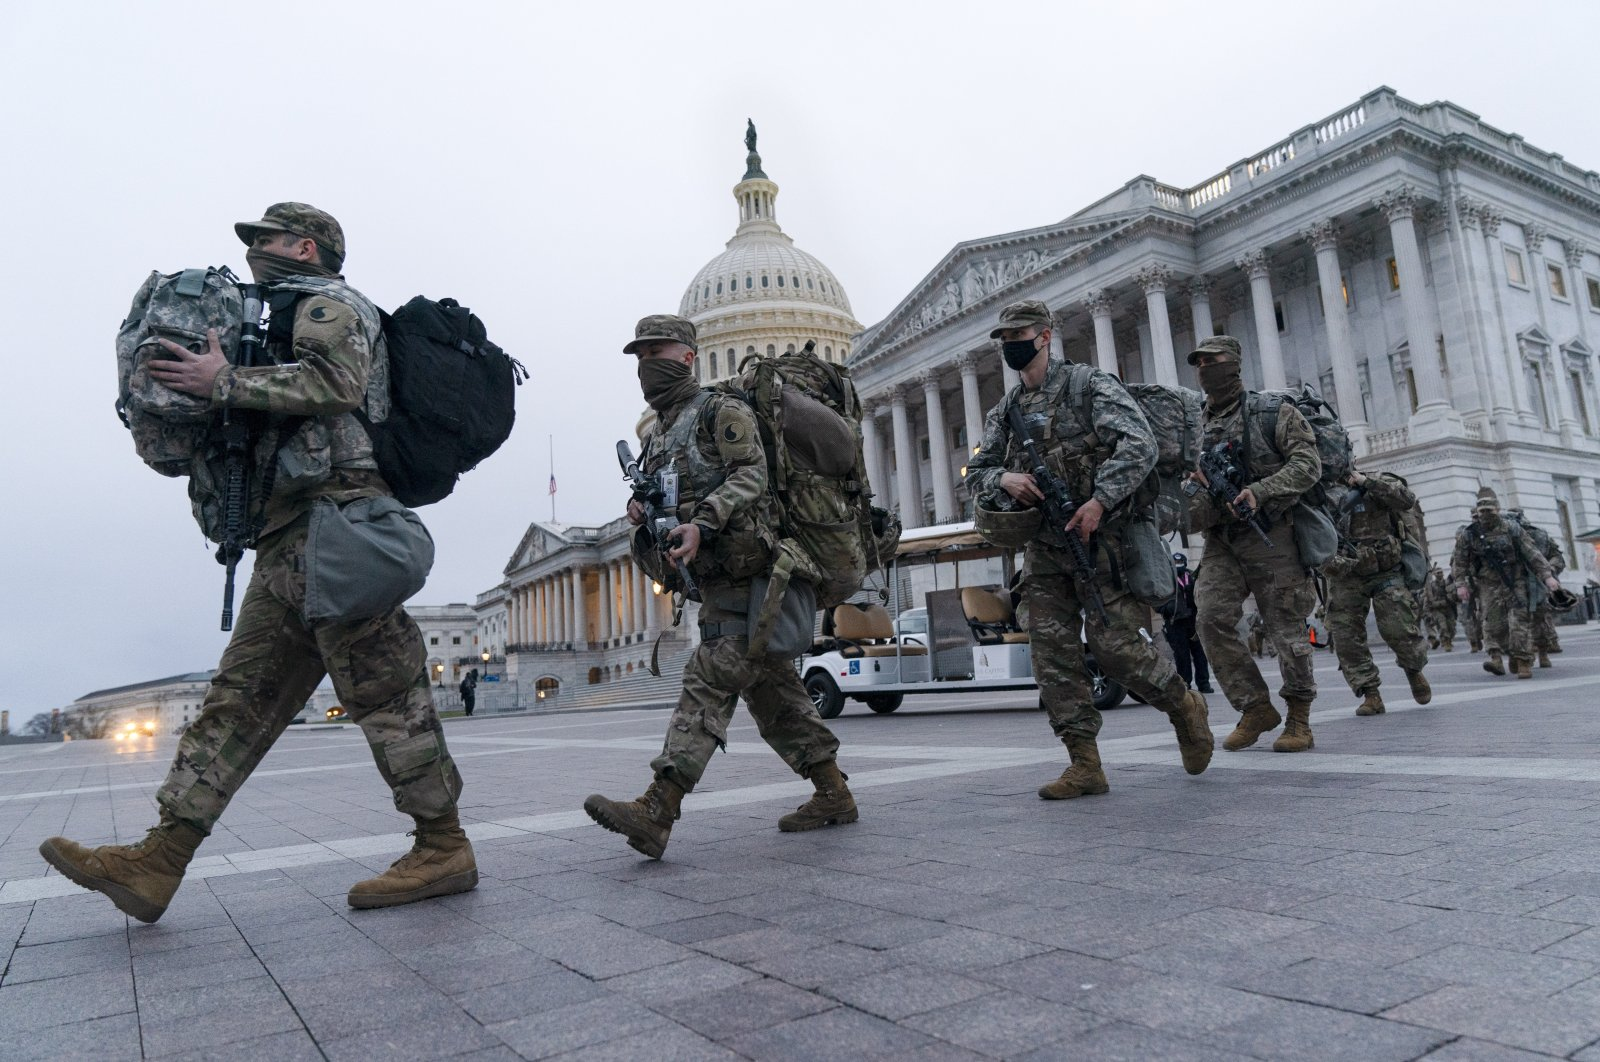 National Guard soldiers walk out of the U.S. Capitol as security is increased ahead of the inauguration of President-elect Joe Biden, Washington, Jan. 16, 2021. (AP Photo)